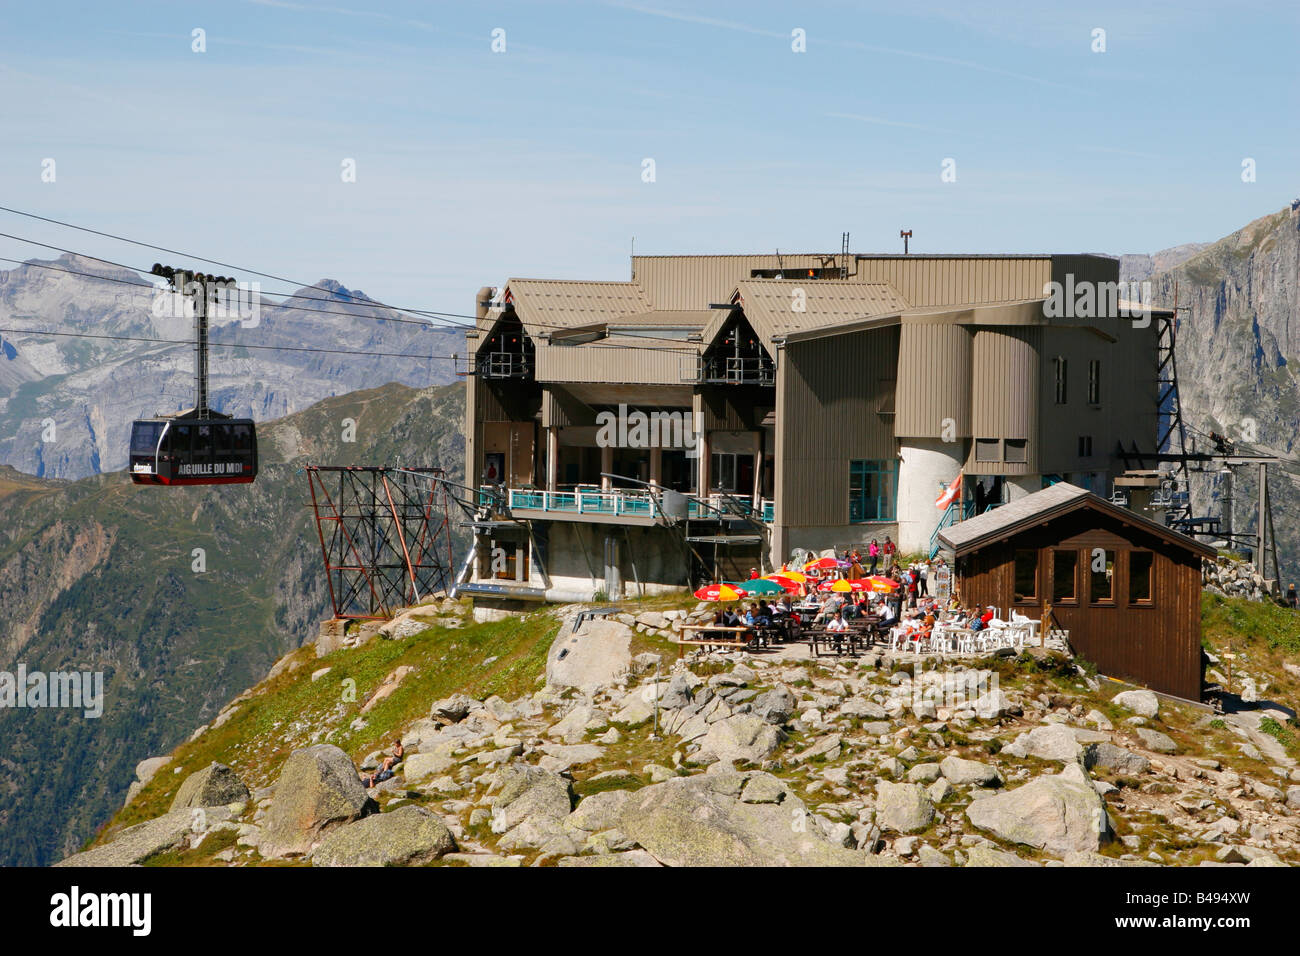 The Aiguille du Midi cable car station at the Plan de l'Aiguille, Chamonix, French Alps on a fine summer's - Stock Image